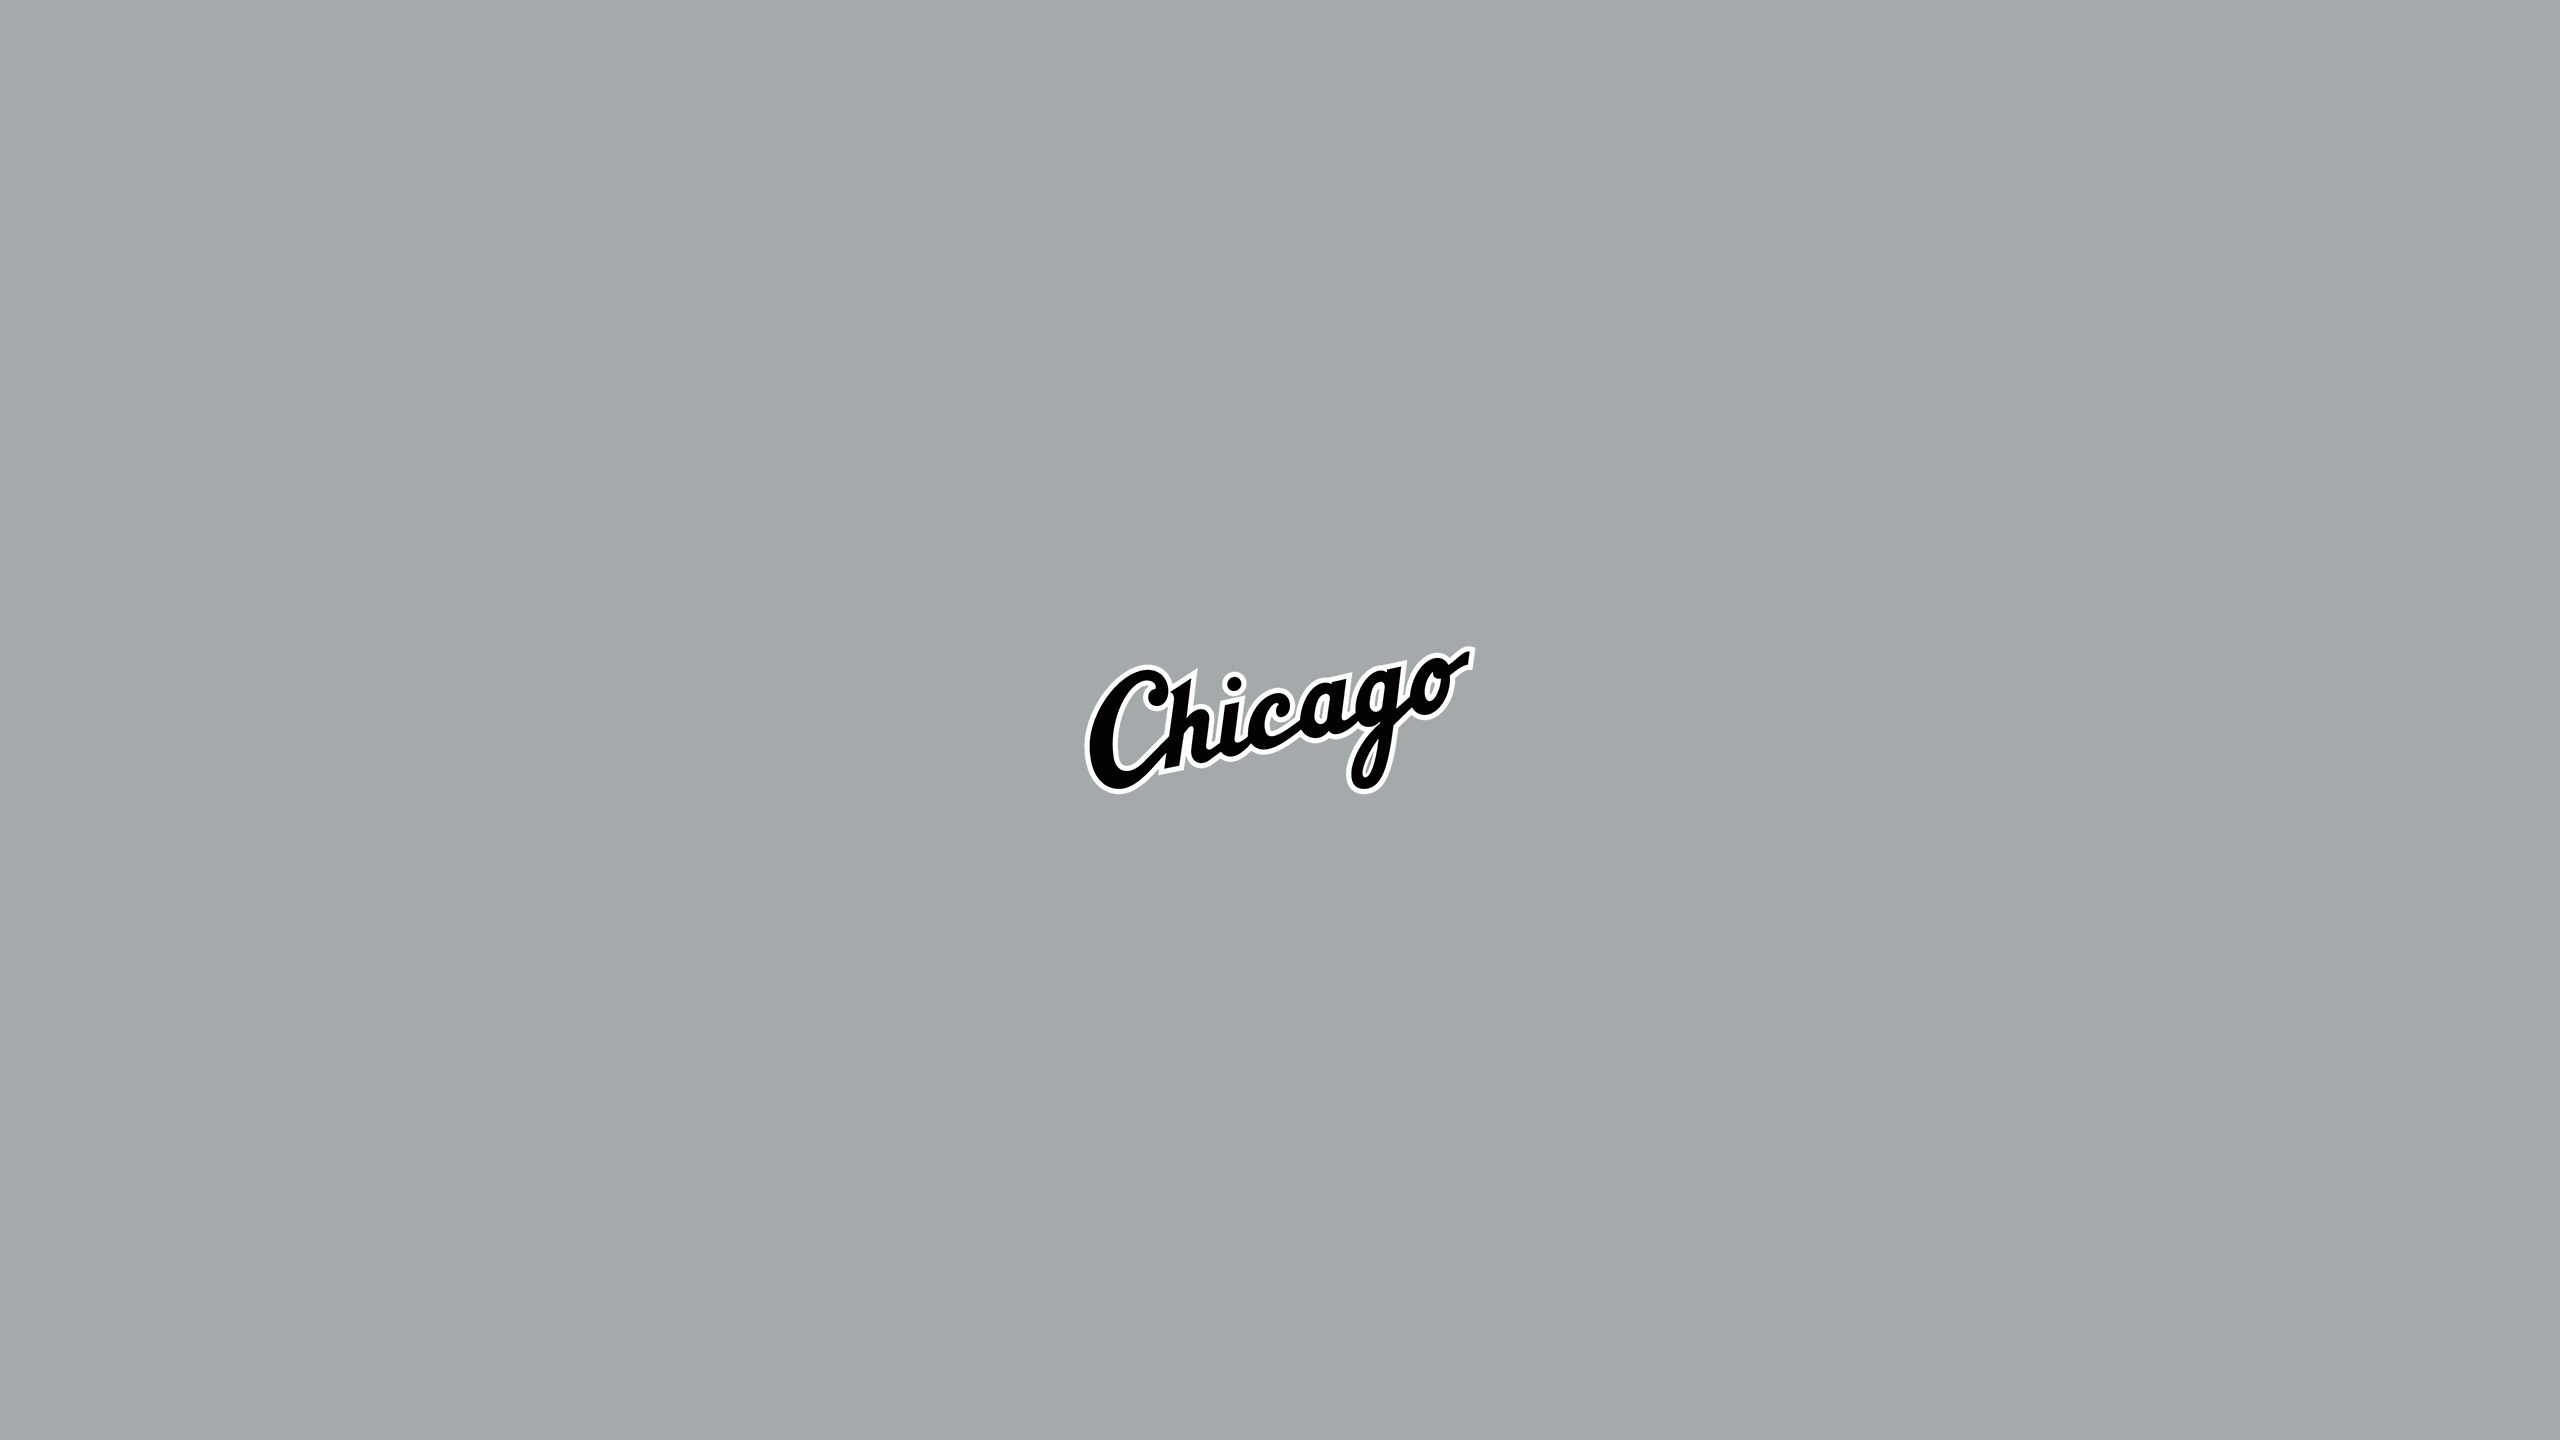 Chicago White Sox (Away)